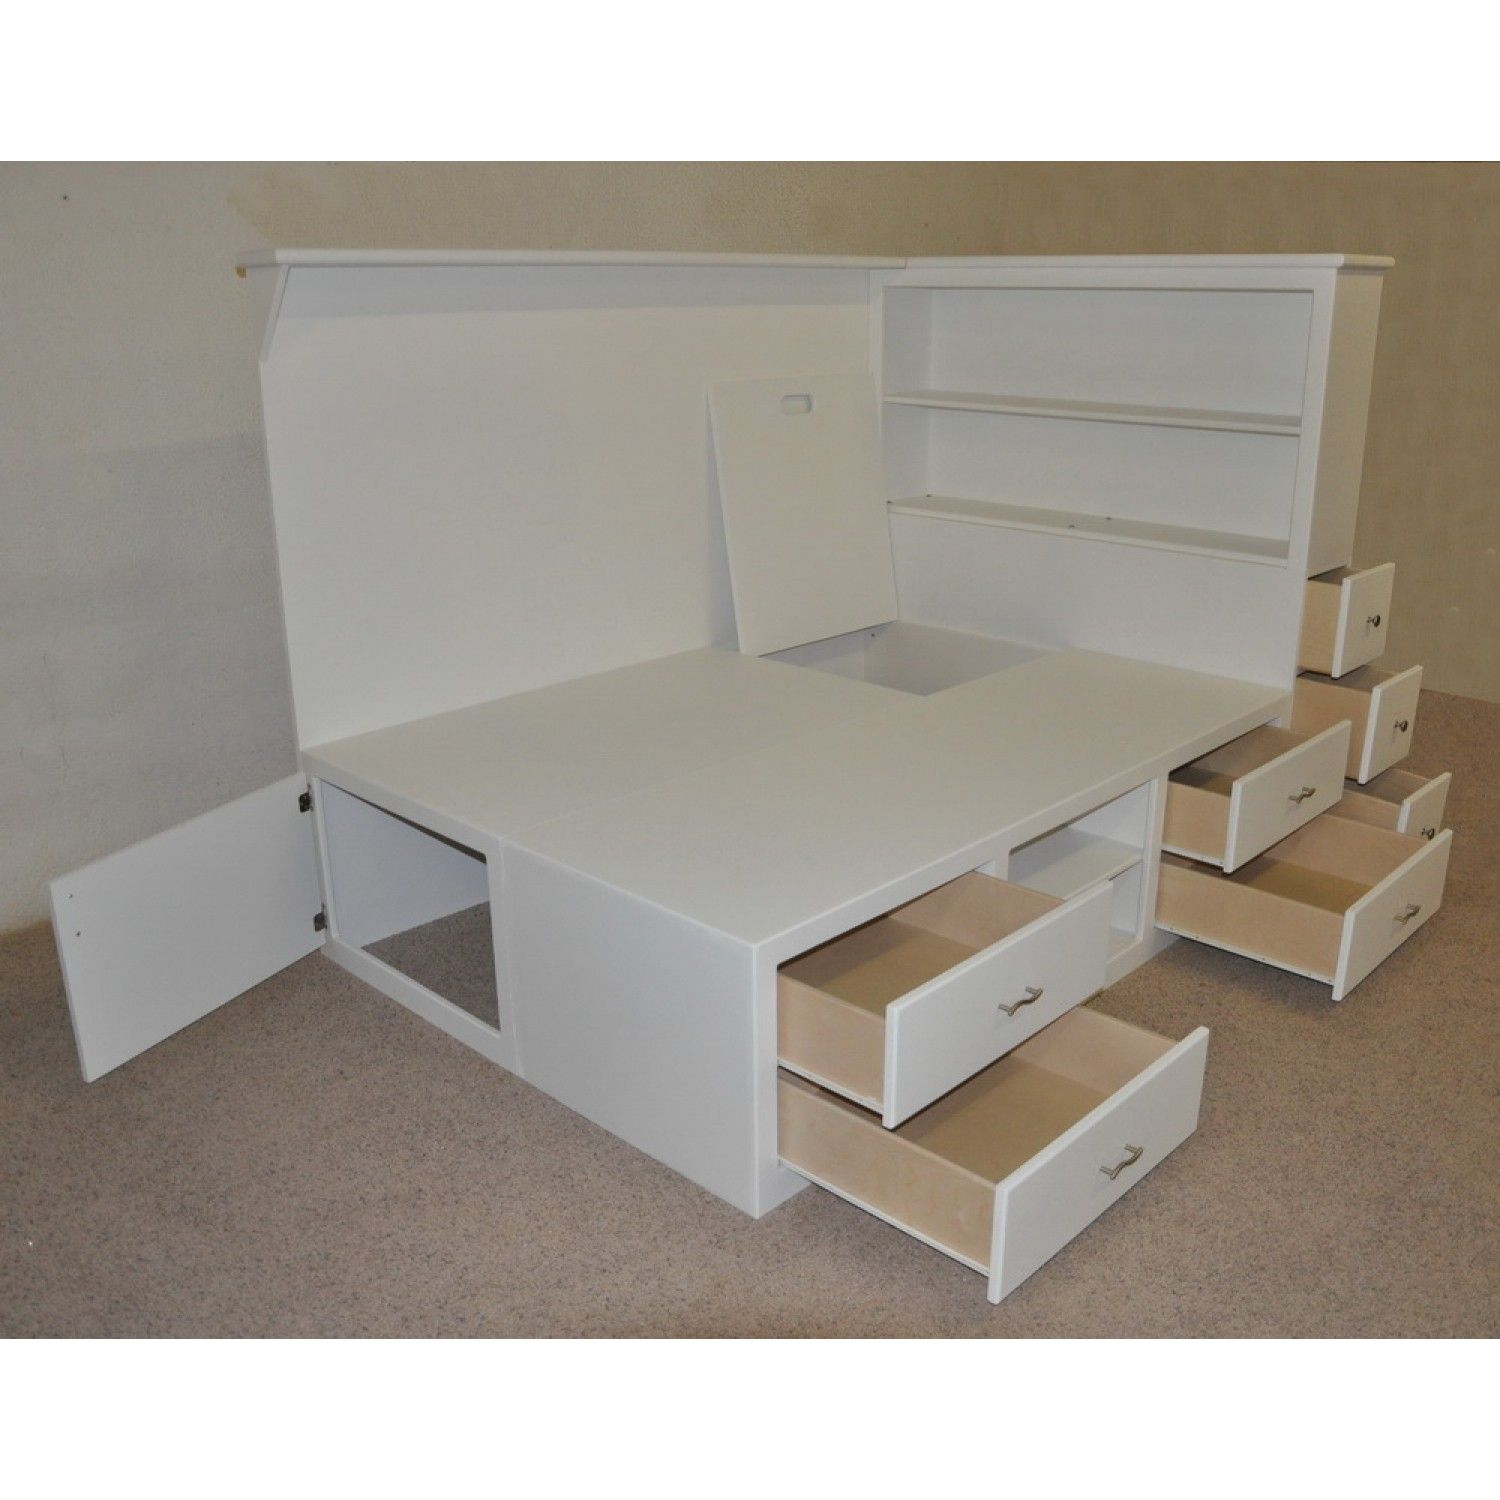 Bed frames with storage plans - Teen Beds With Storage Underneath Drawers Multiple Shelves And Deep Storage